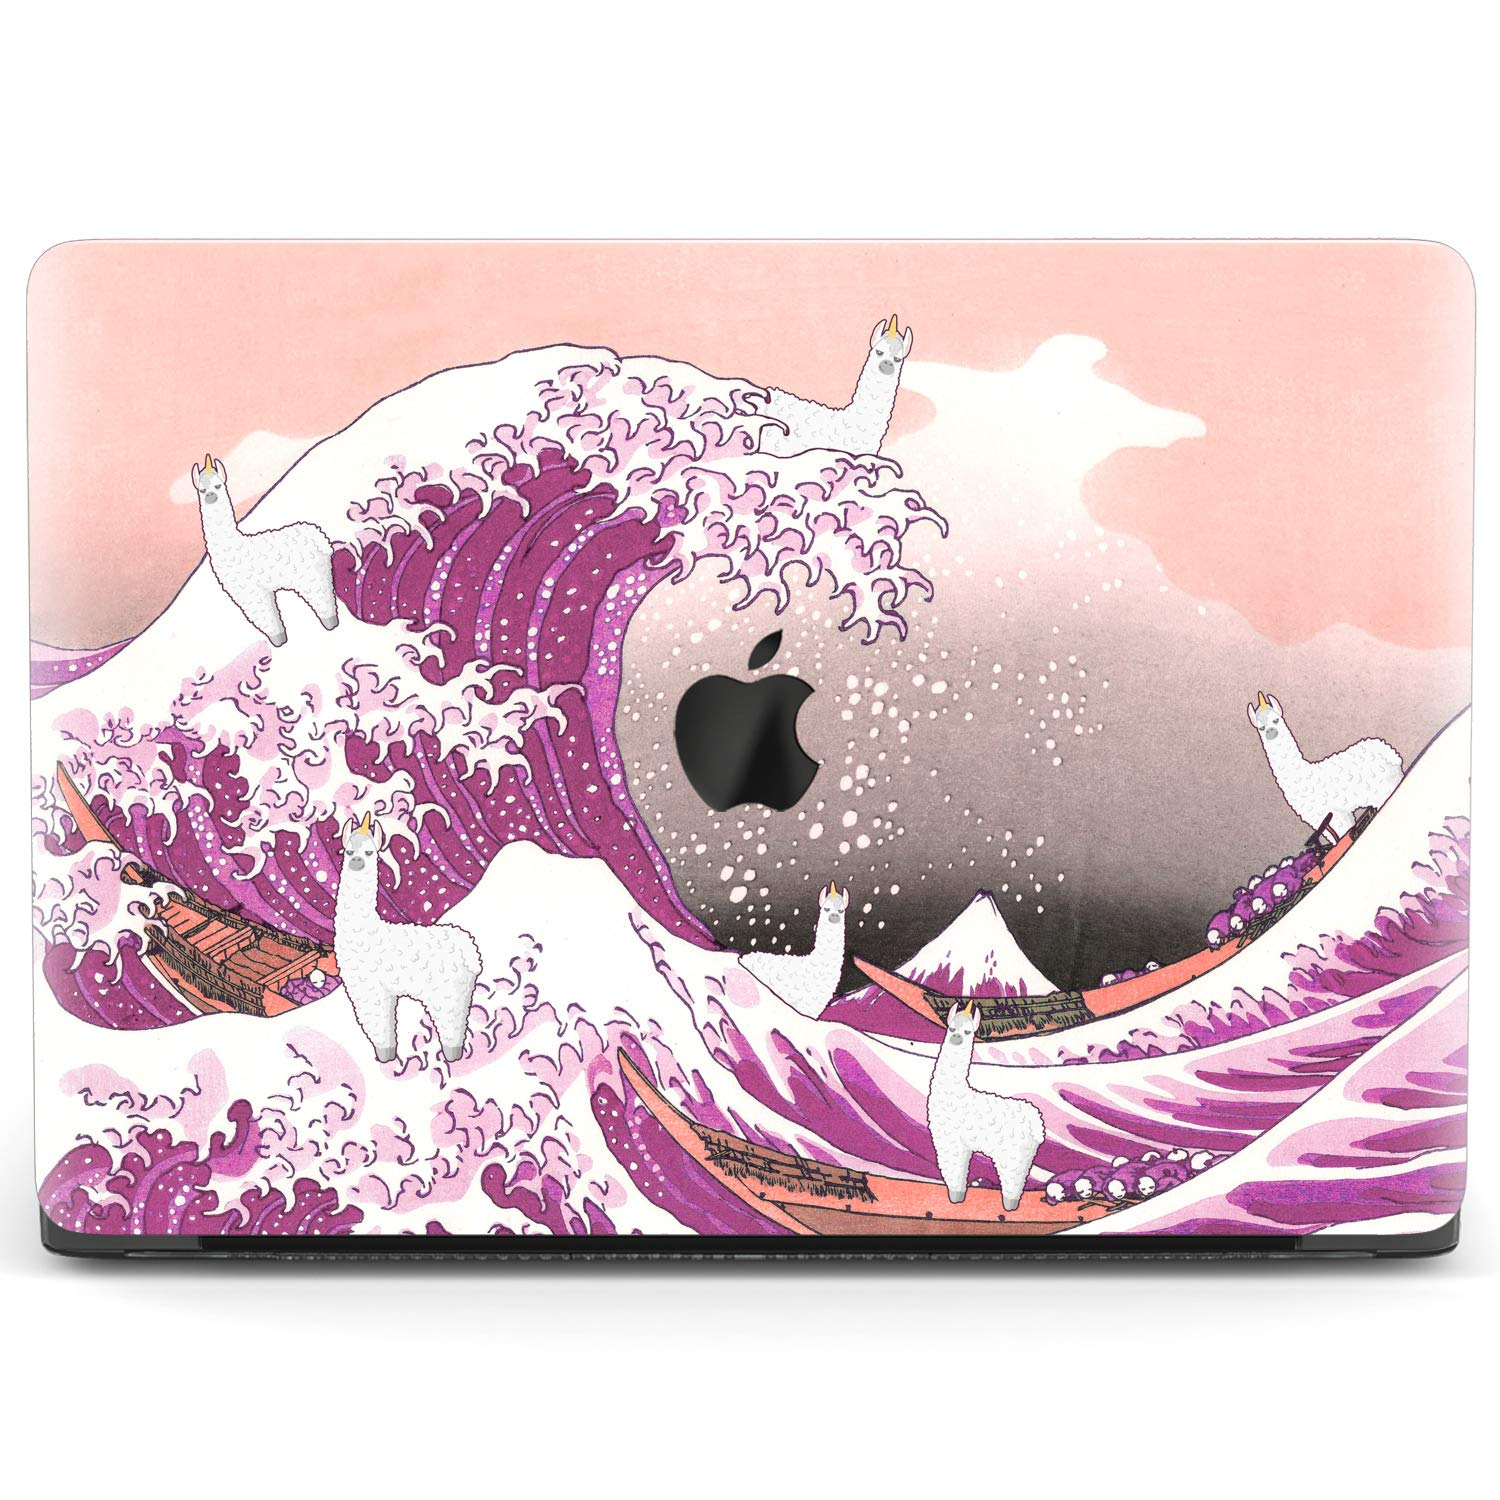 MacBook Air 13in Case Art Water Creature Sea Fish Scale MacBook Pro 2017 Cover Multi-Color /& Size Choices/10//12//13//15//17 Inch Computer Tablet Briefcase Carrying Bag